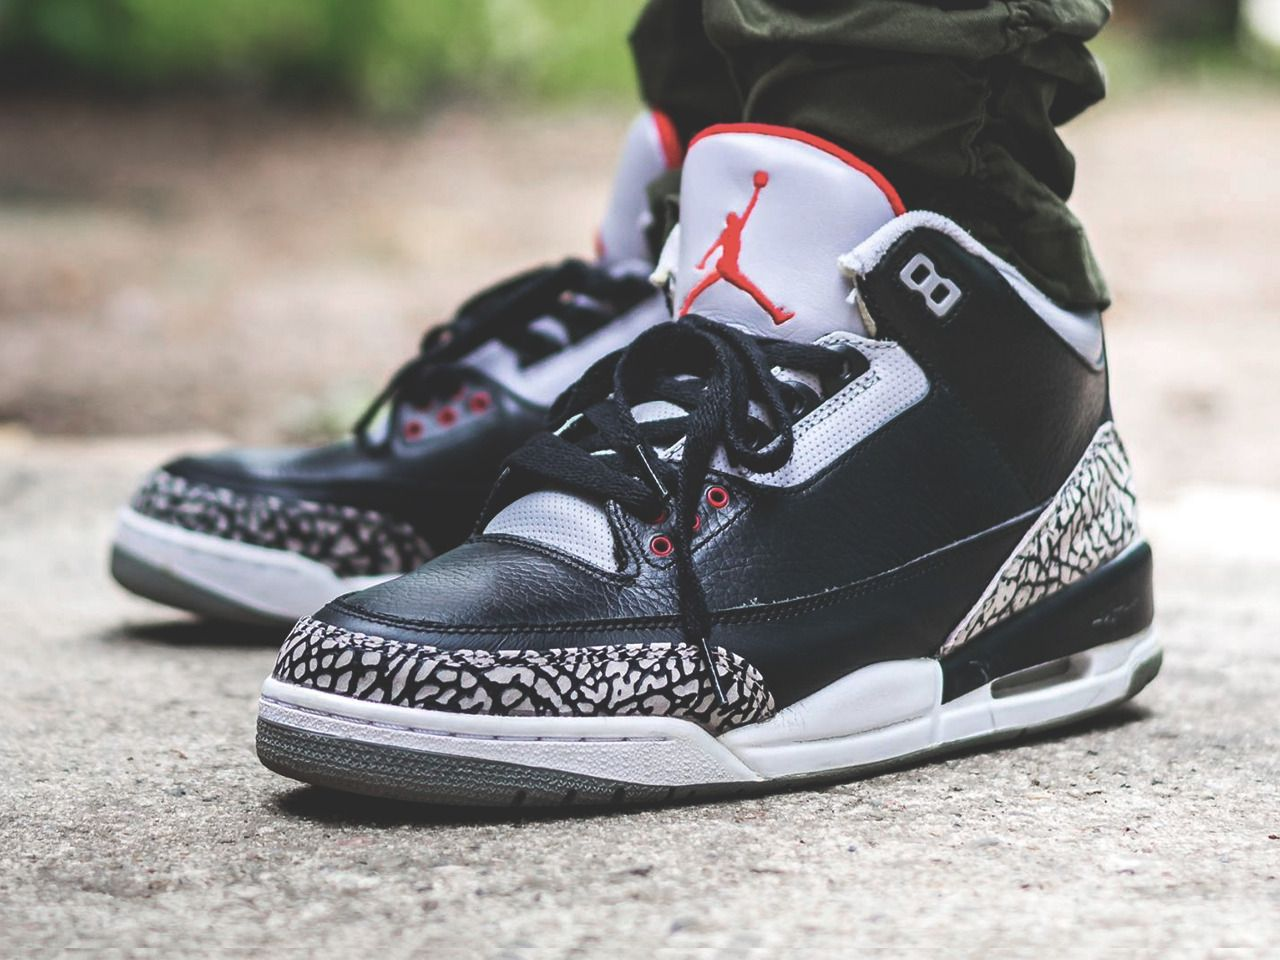 sports shoes 098a3 f5fbe Nike Air Jordan III Retro Black Cement CDP - 2008 (by tonydiamonds)